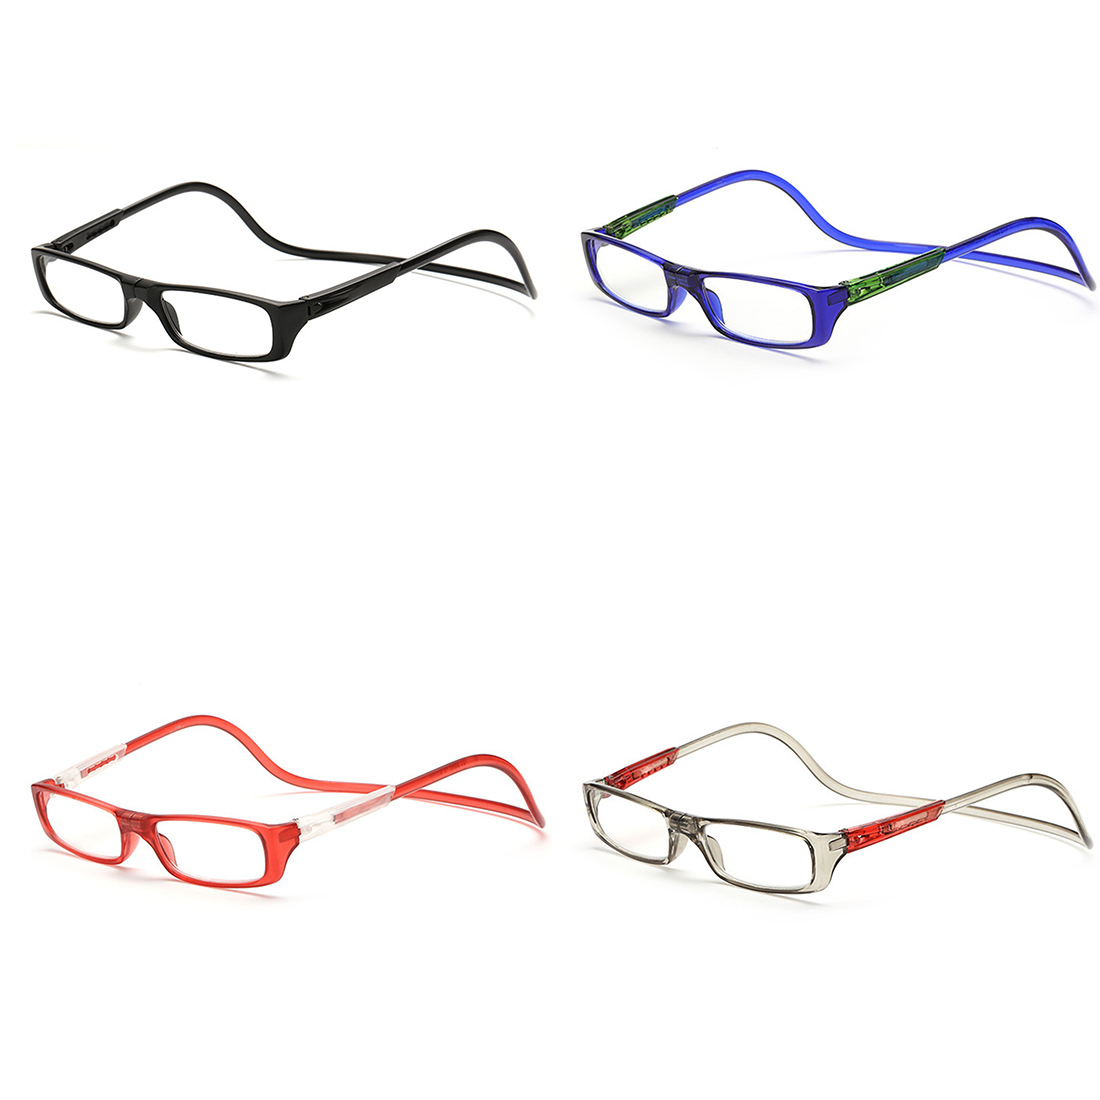 Portable Collapsible Reading Glasses 150/200/250/300 Degree Glasses Magnifiers Ultralight Presbyopic Glasses